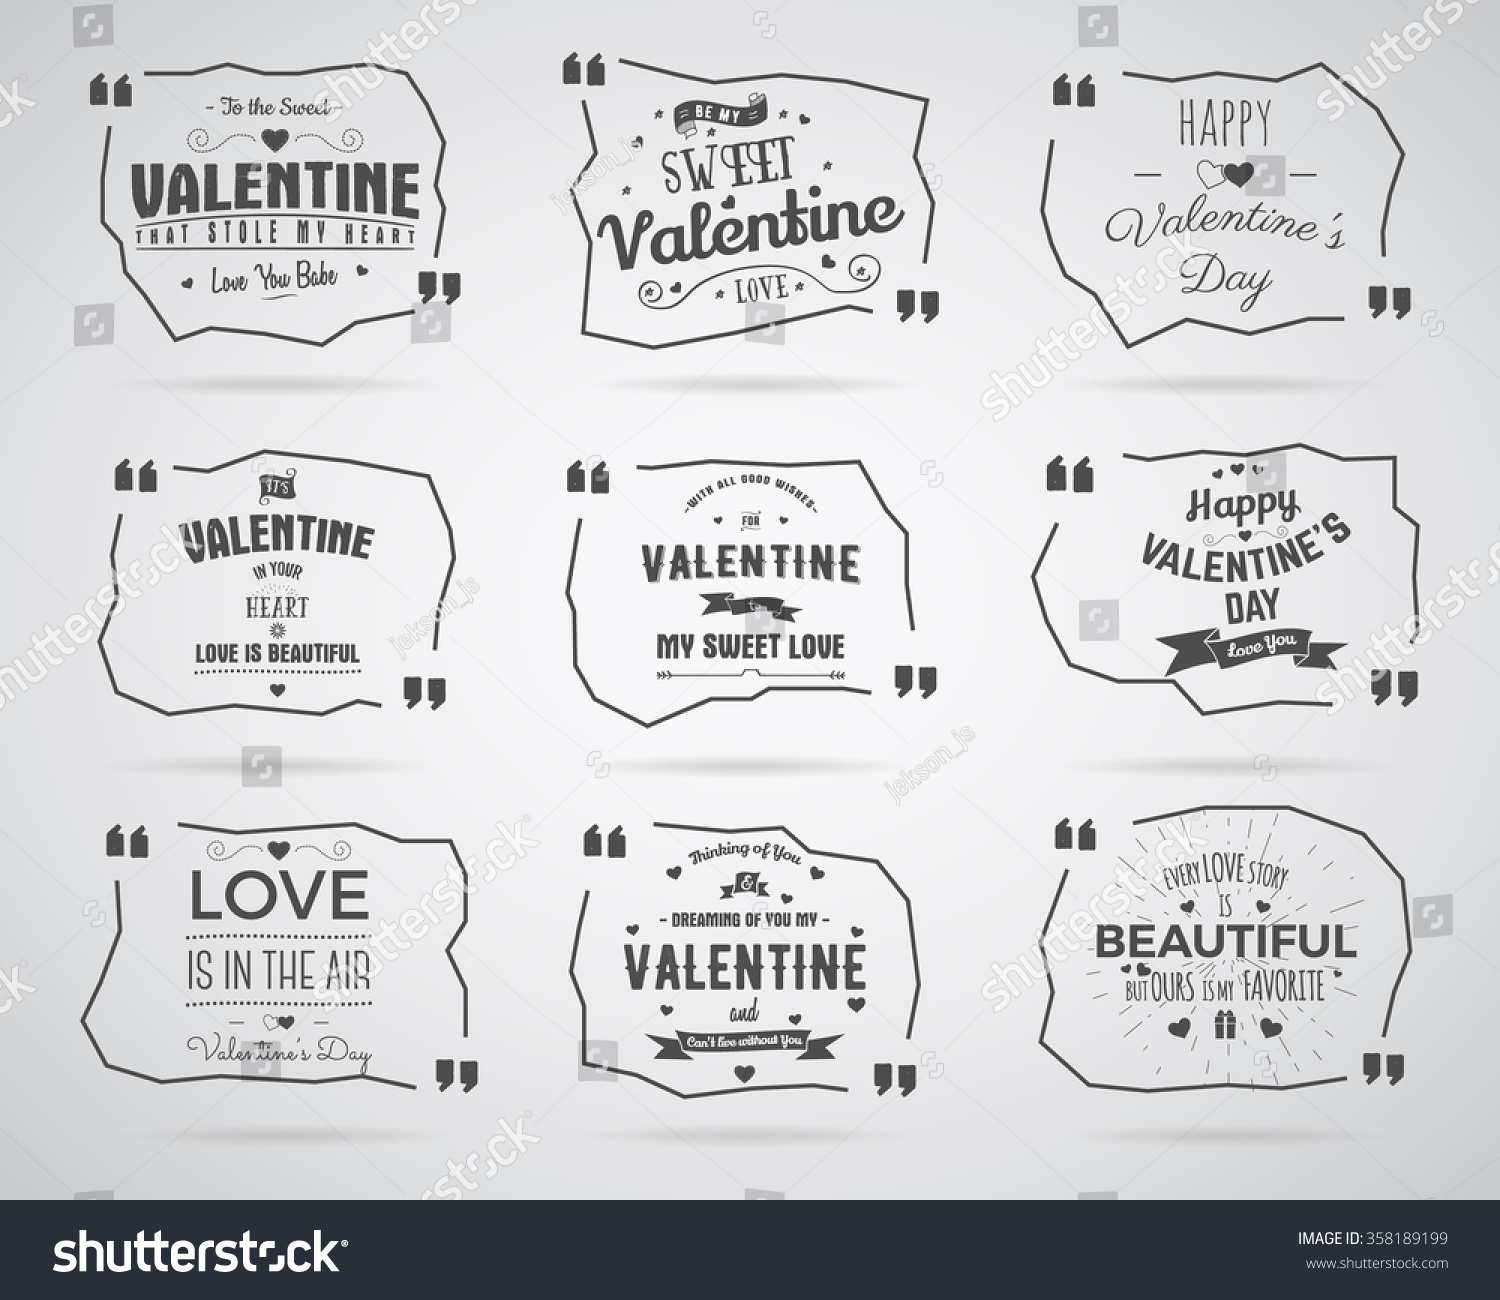 valentine day watercolor ink splash quote stock vector 358189199 valentine day watercolor ink splash quote blank templates quote bubbles love quotes